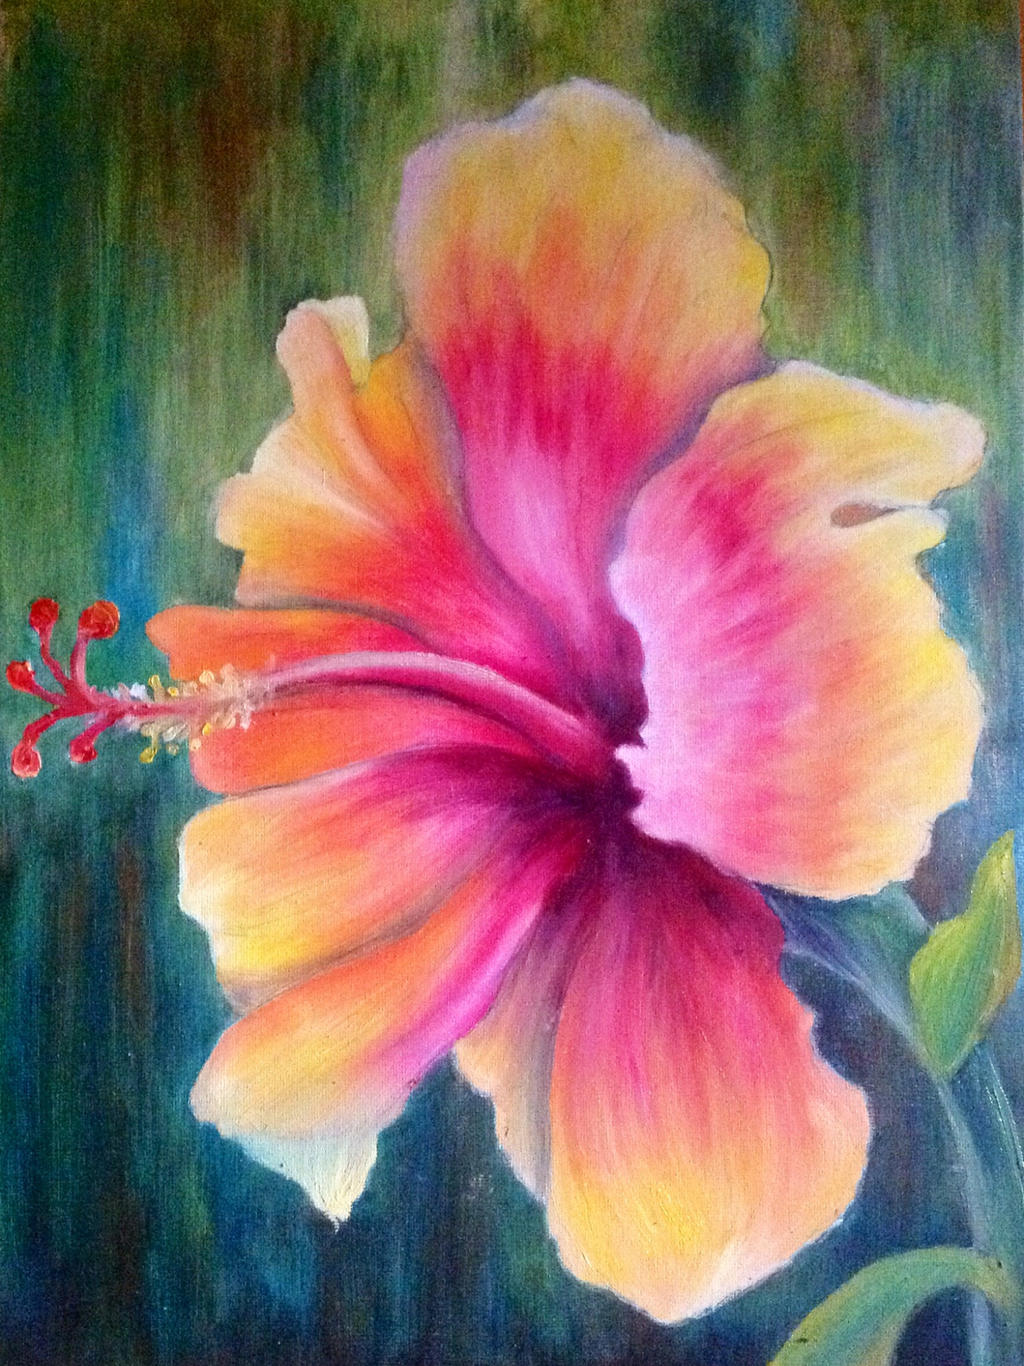 Tropical Flower Paintings | www.imgkid.com - The Image Kid ...